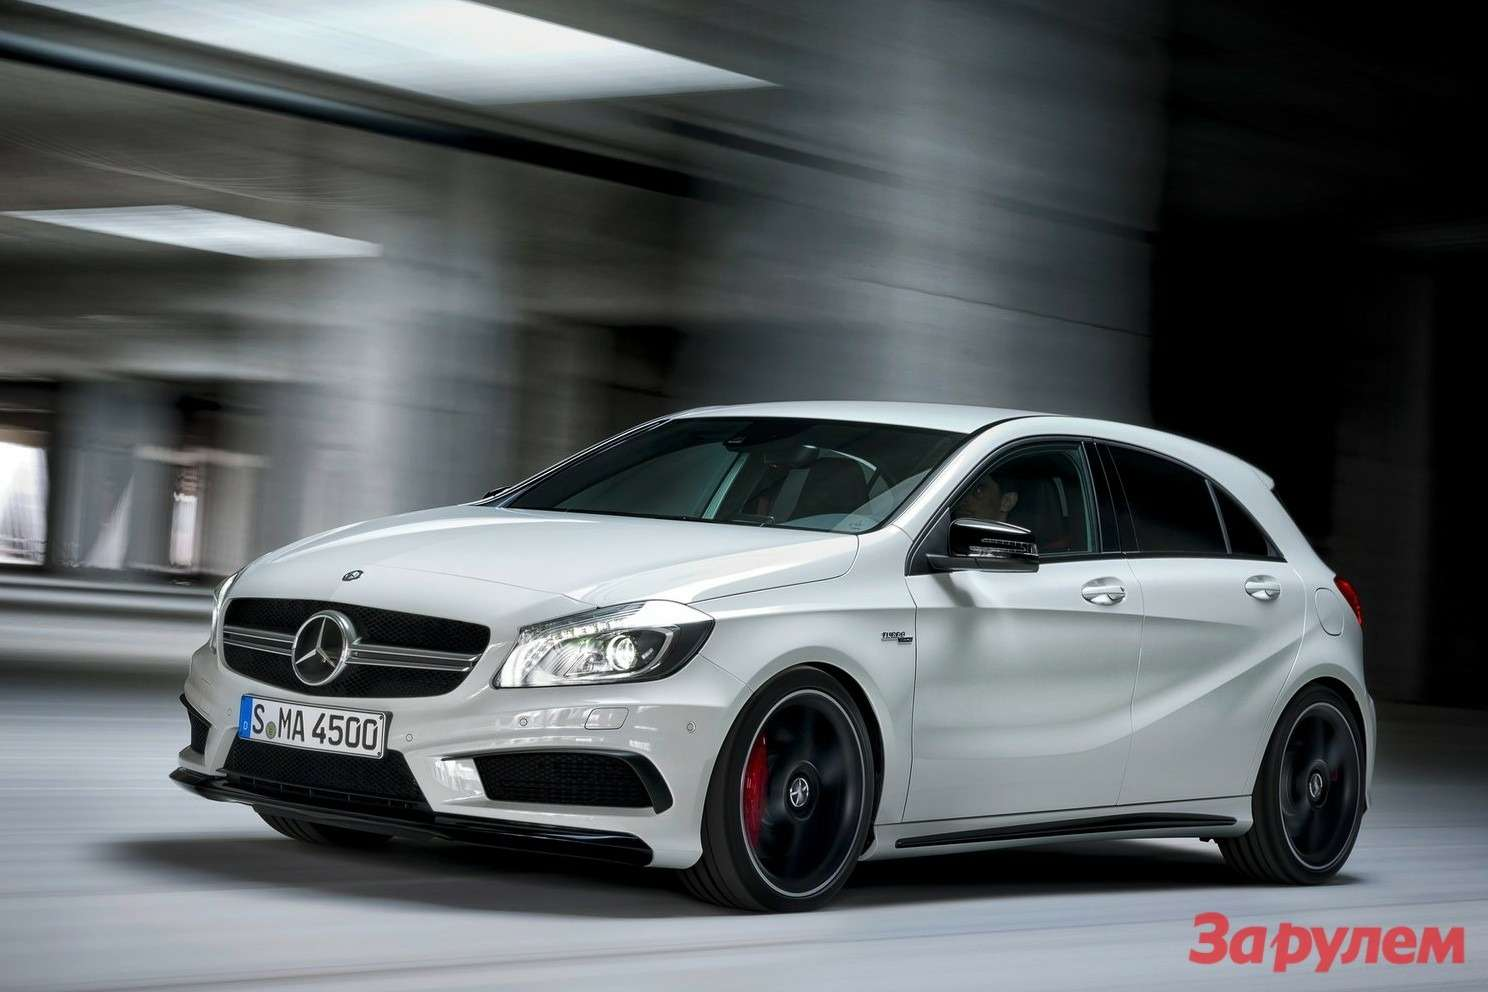 Mercedes-Benz A45AMG side-front view